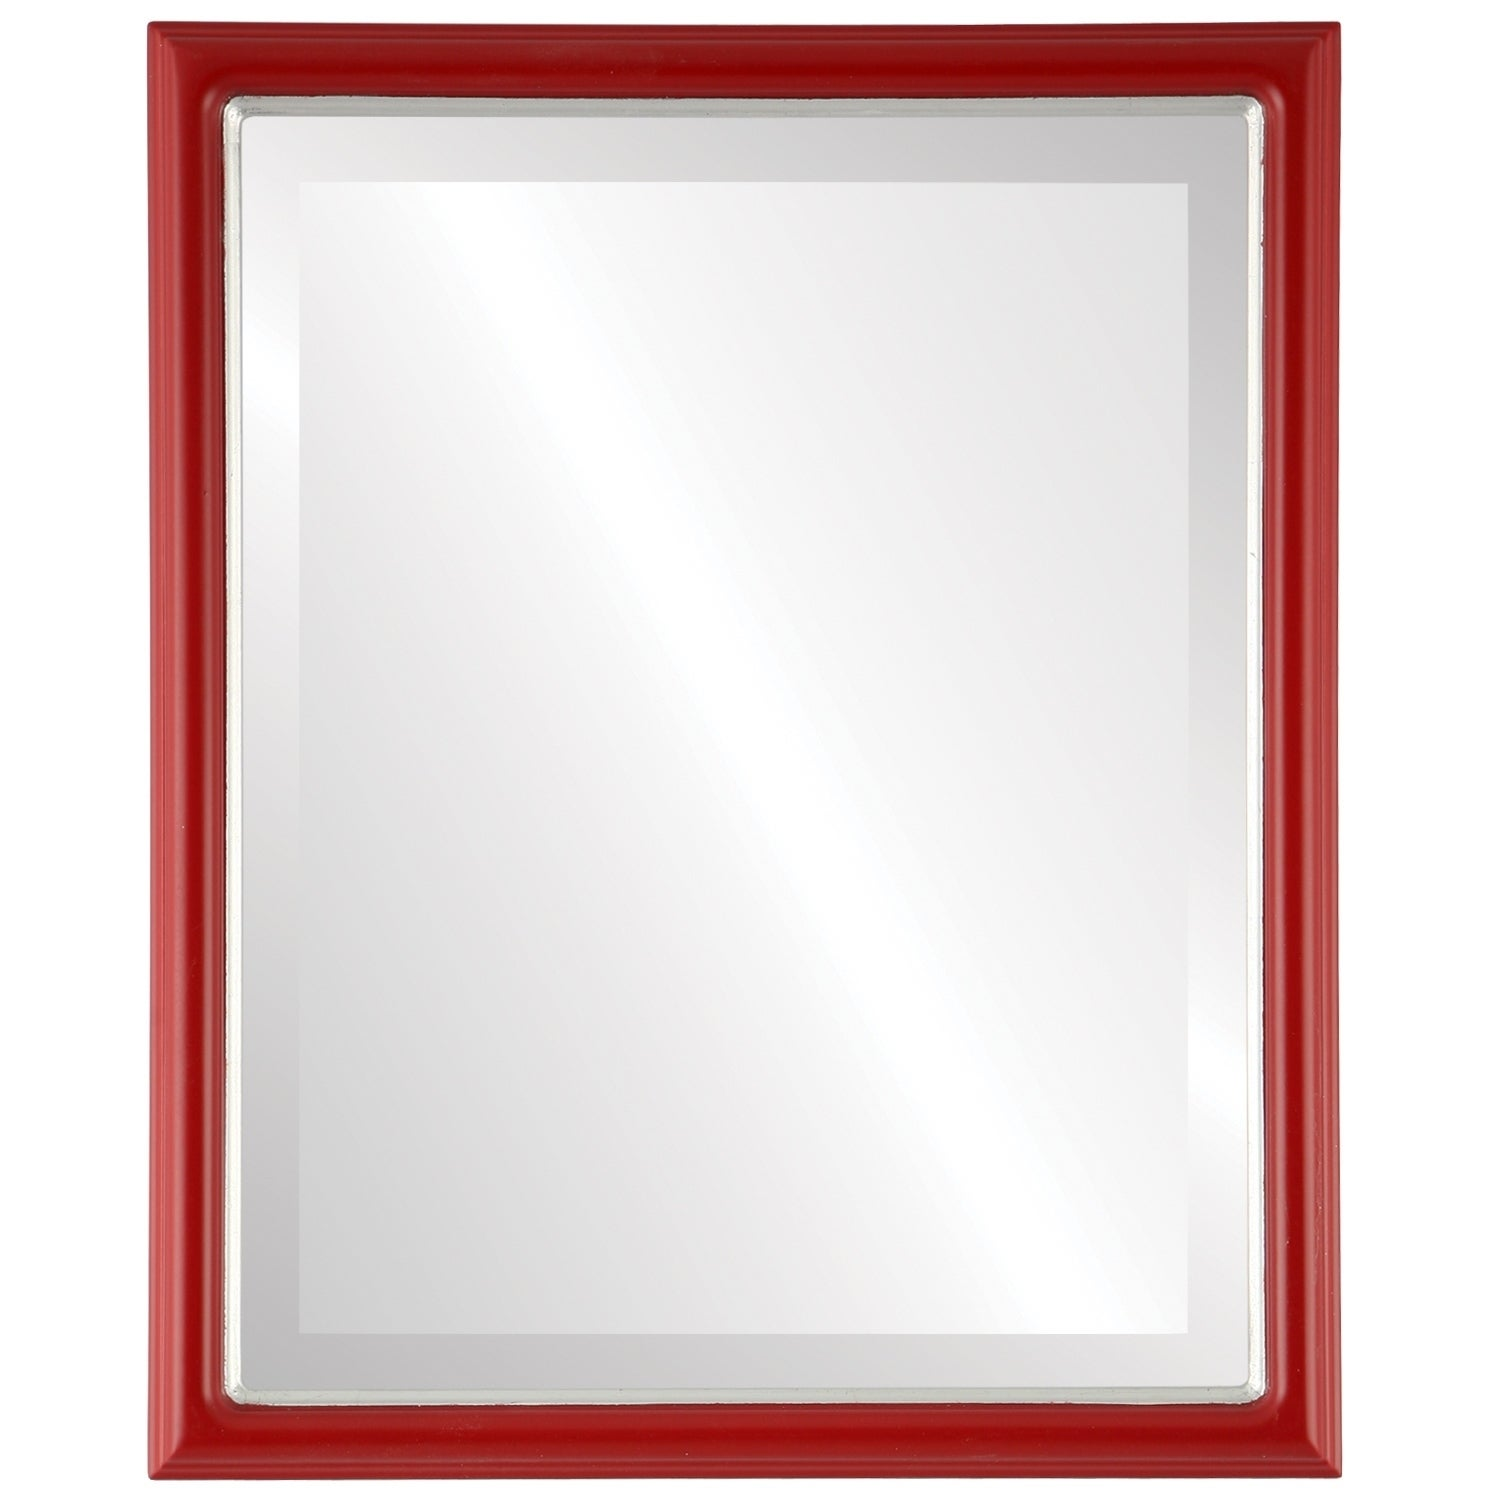 Hamilton Framed Rectangle Mirror in Holiday Red  Lip (17x21)